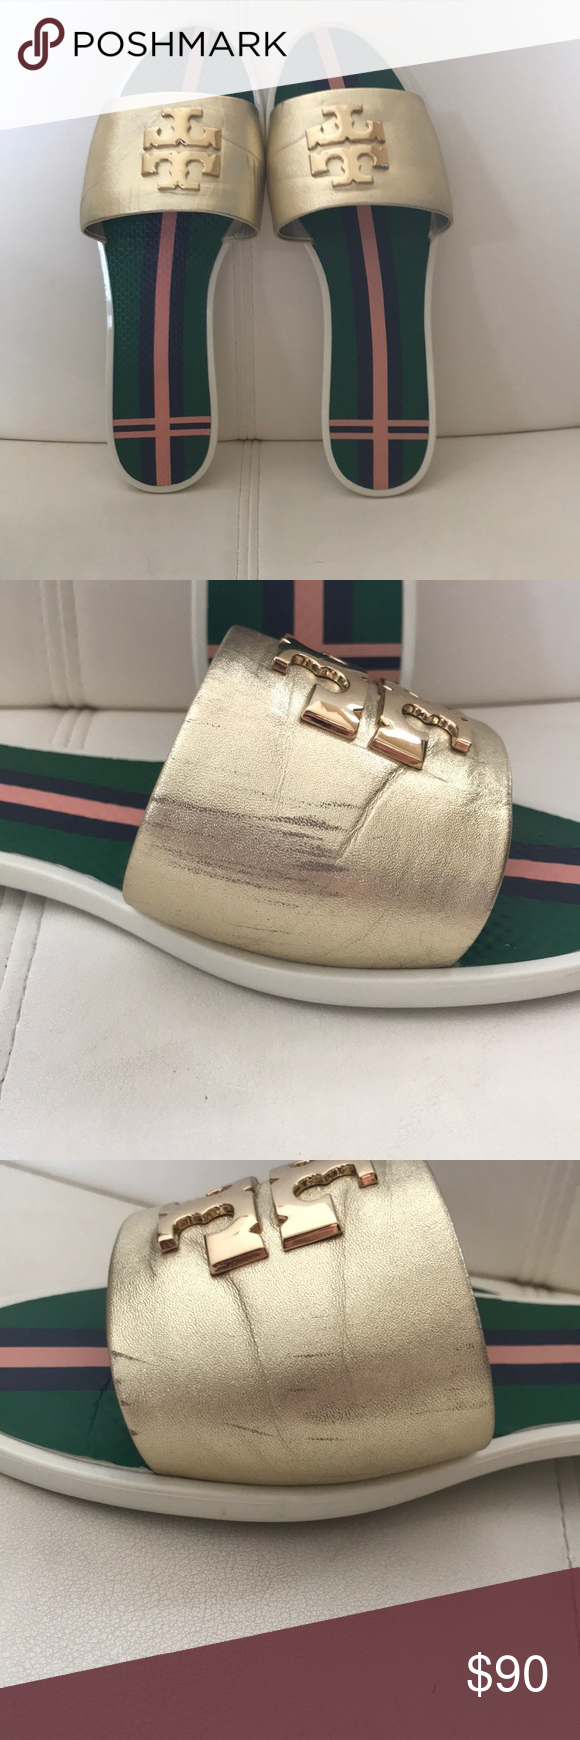 8d69f987778 Tory Burch logo metallic jelly slide Sporty and refined in metallic leather  slide. Gently used